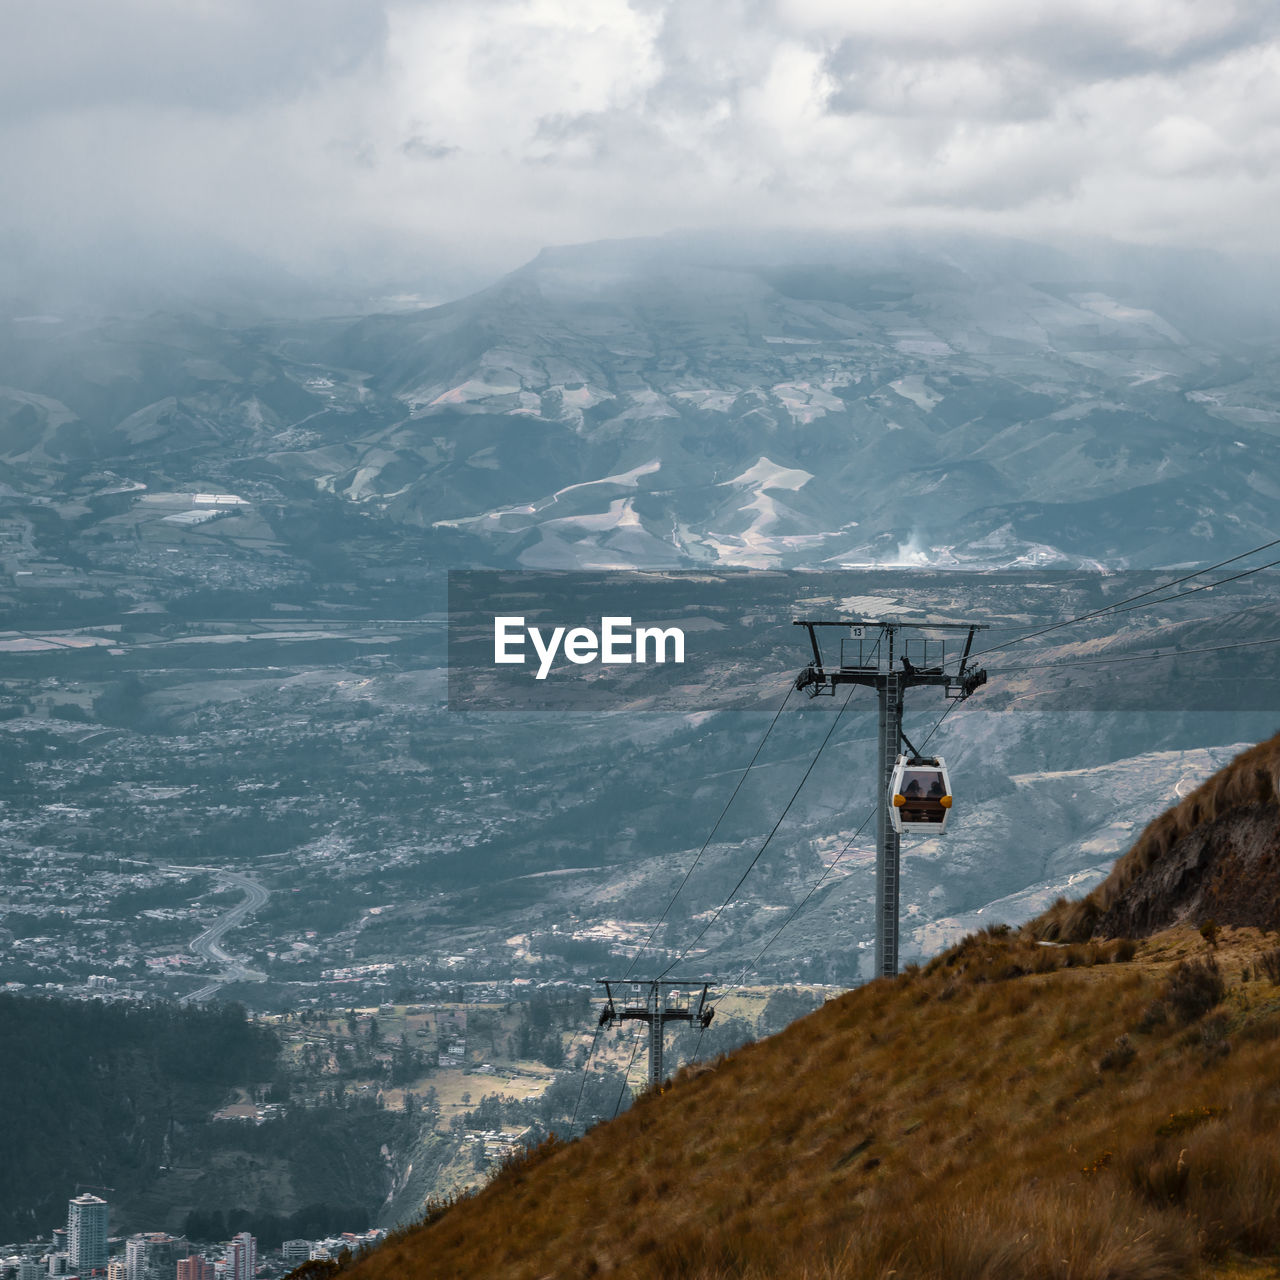 mountain, cloud - sky, sky, scenics - nature, beauty in nature, mountain range, nature, landscape, cable car, environment, day, overhead cable car, no people, tranquility, tranquil scene, technology, cable, connection, outdoors, electricity, snowcapped mountain